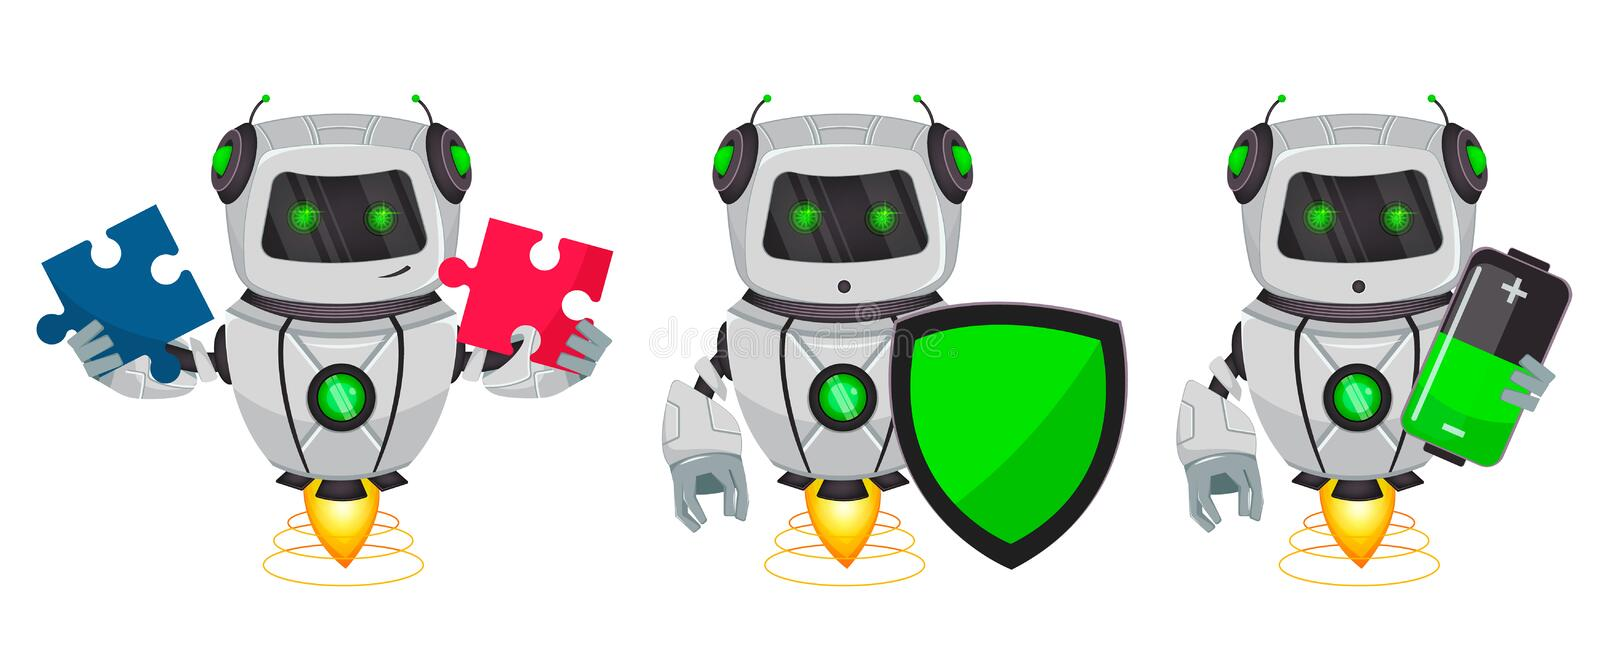 Robot with artificial intelligence, bot, set of three poses. Funny cartoon character holds puzzle, holds shield and holds battery stock illustration